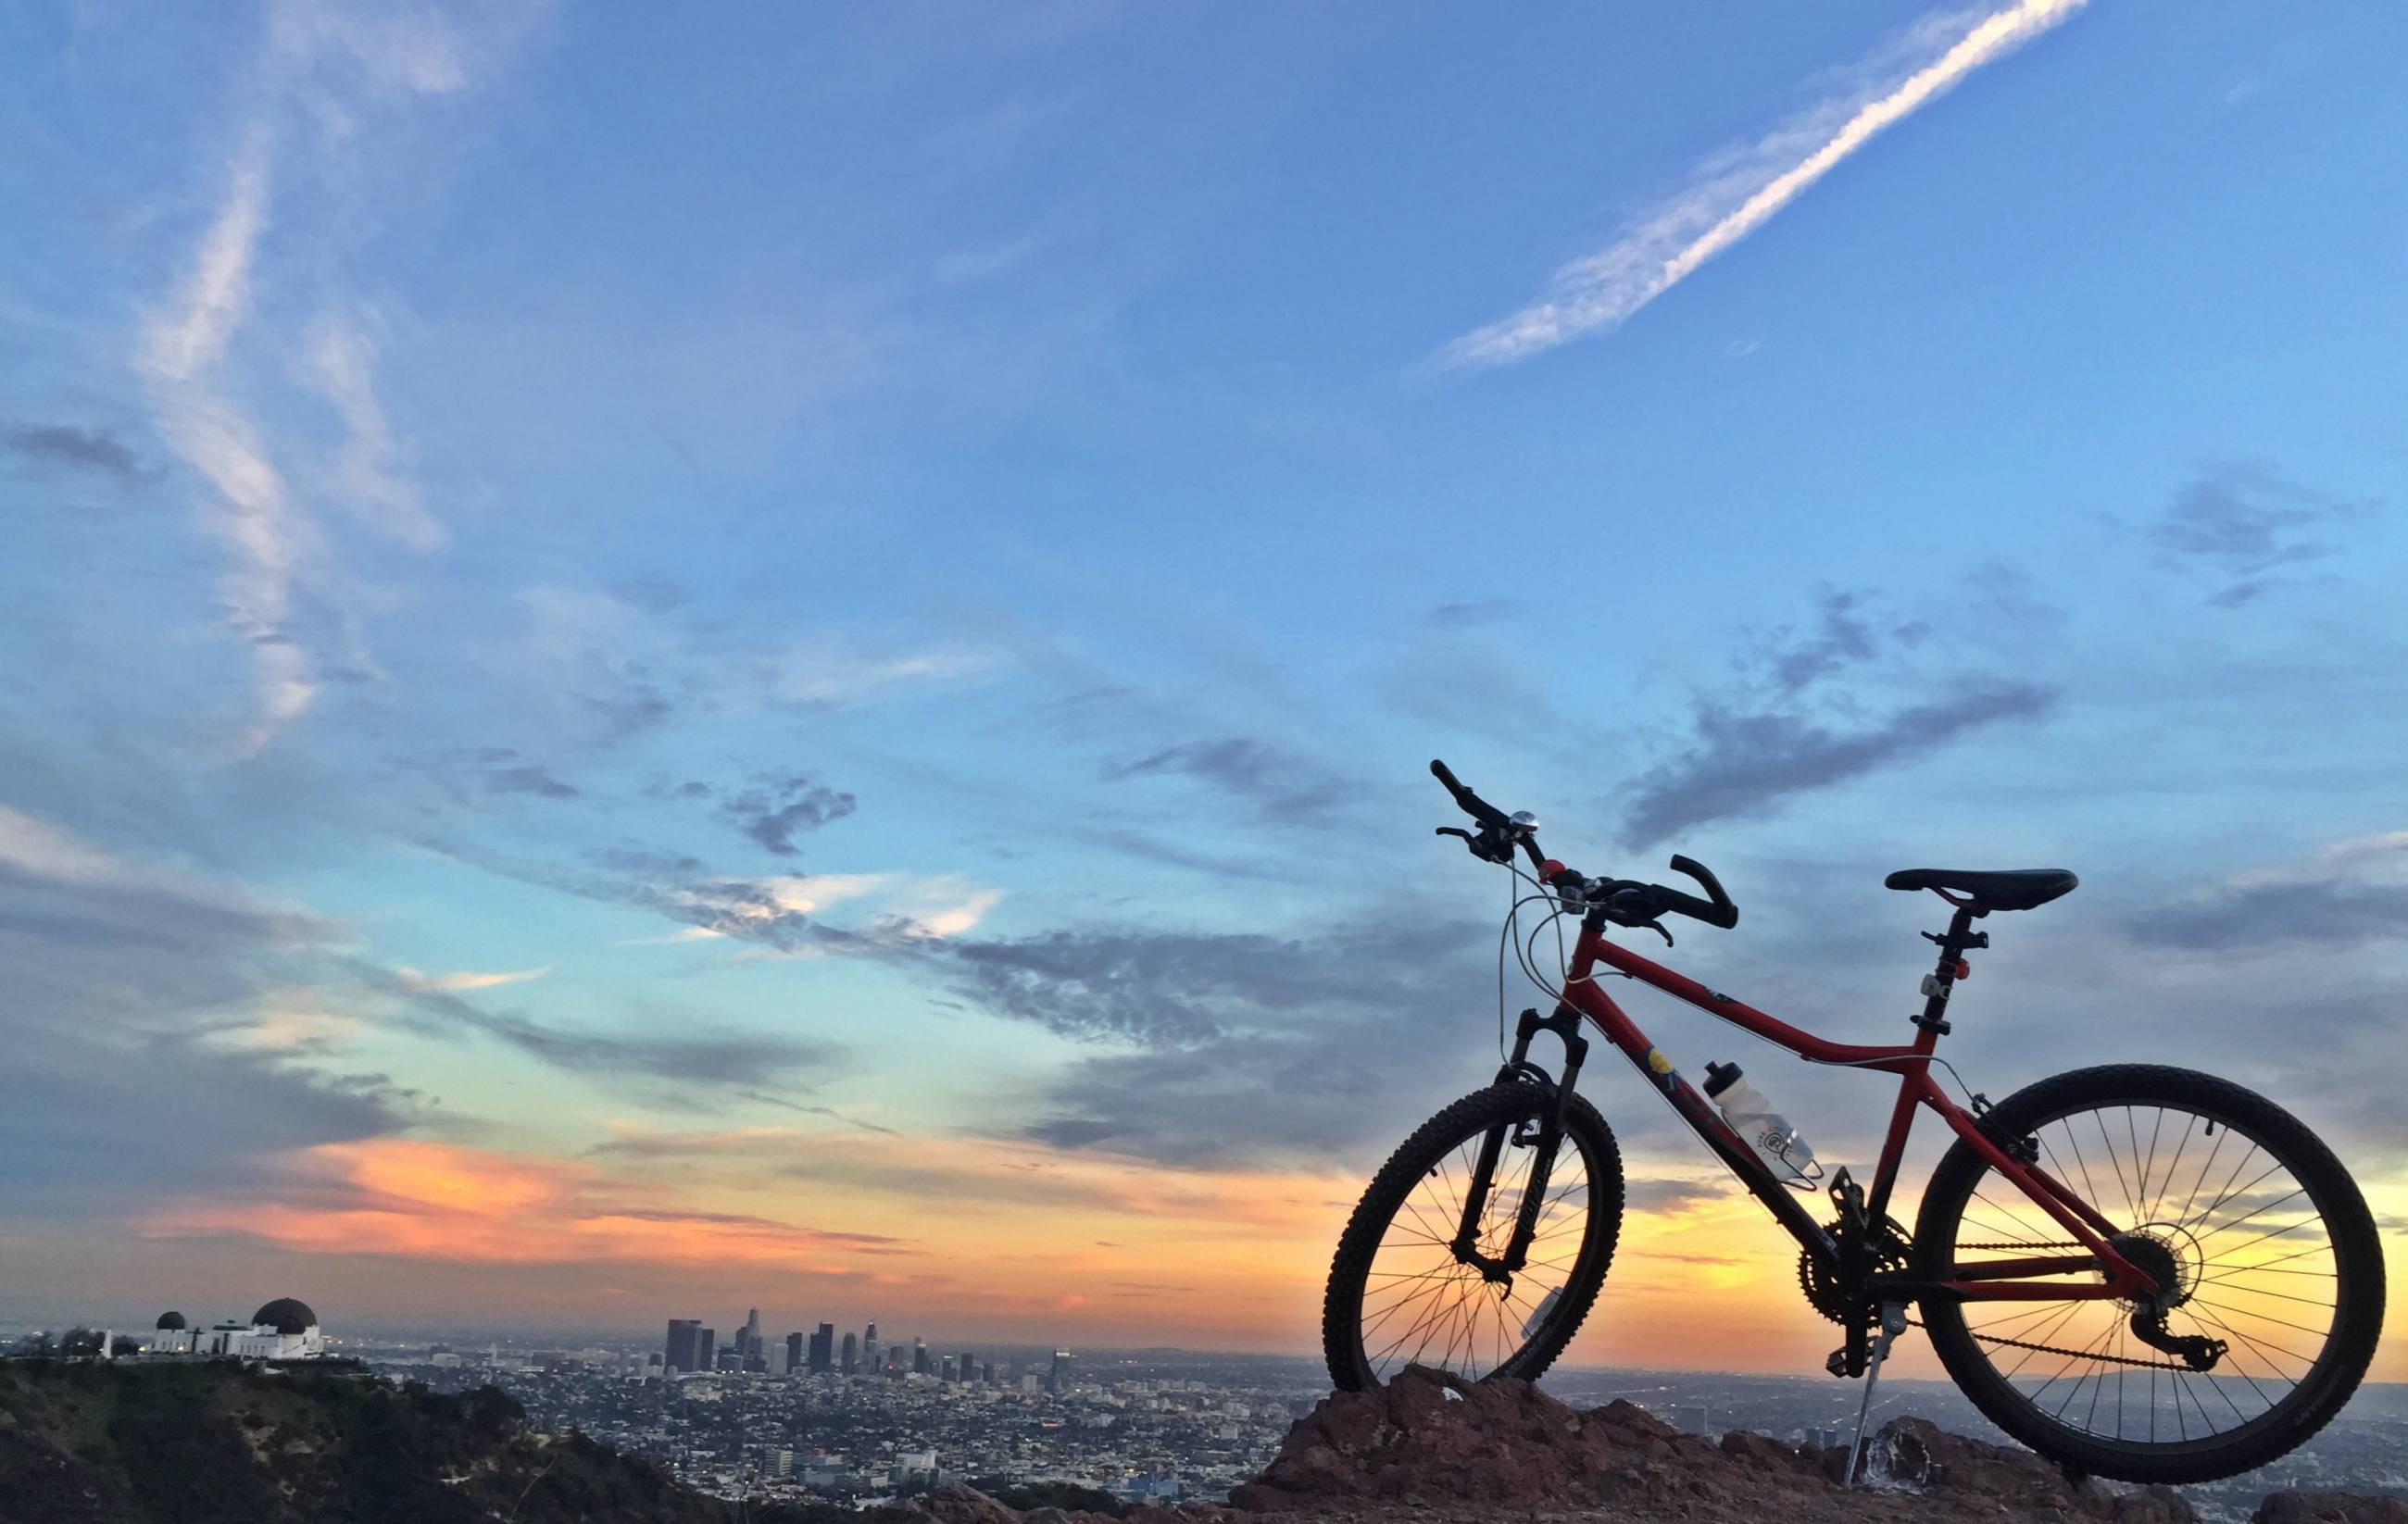 Griffith Park at sunset   |  Photo: Joshua Johnson